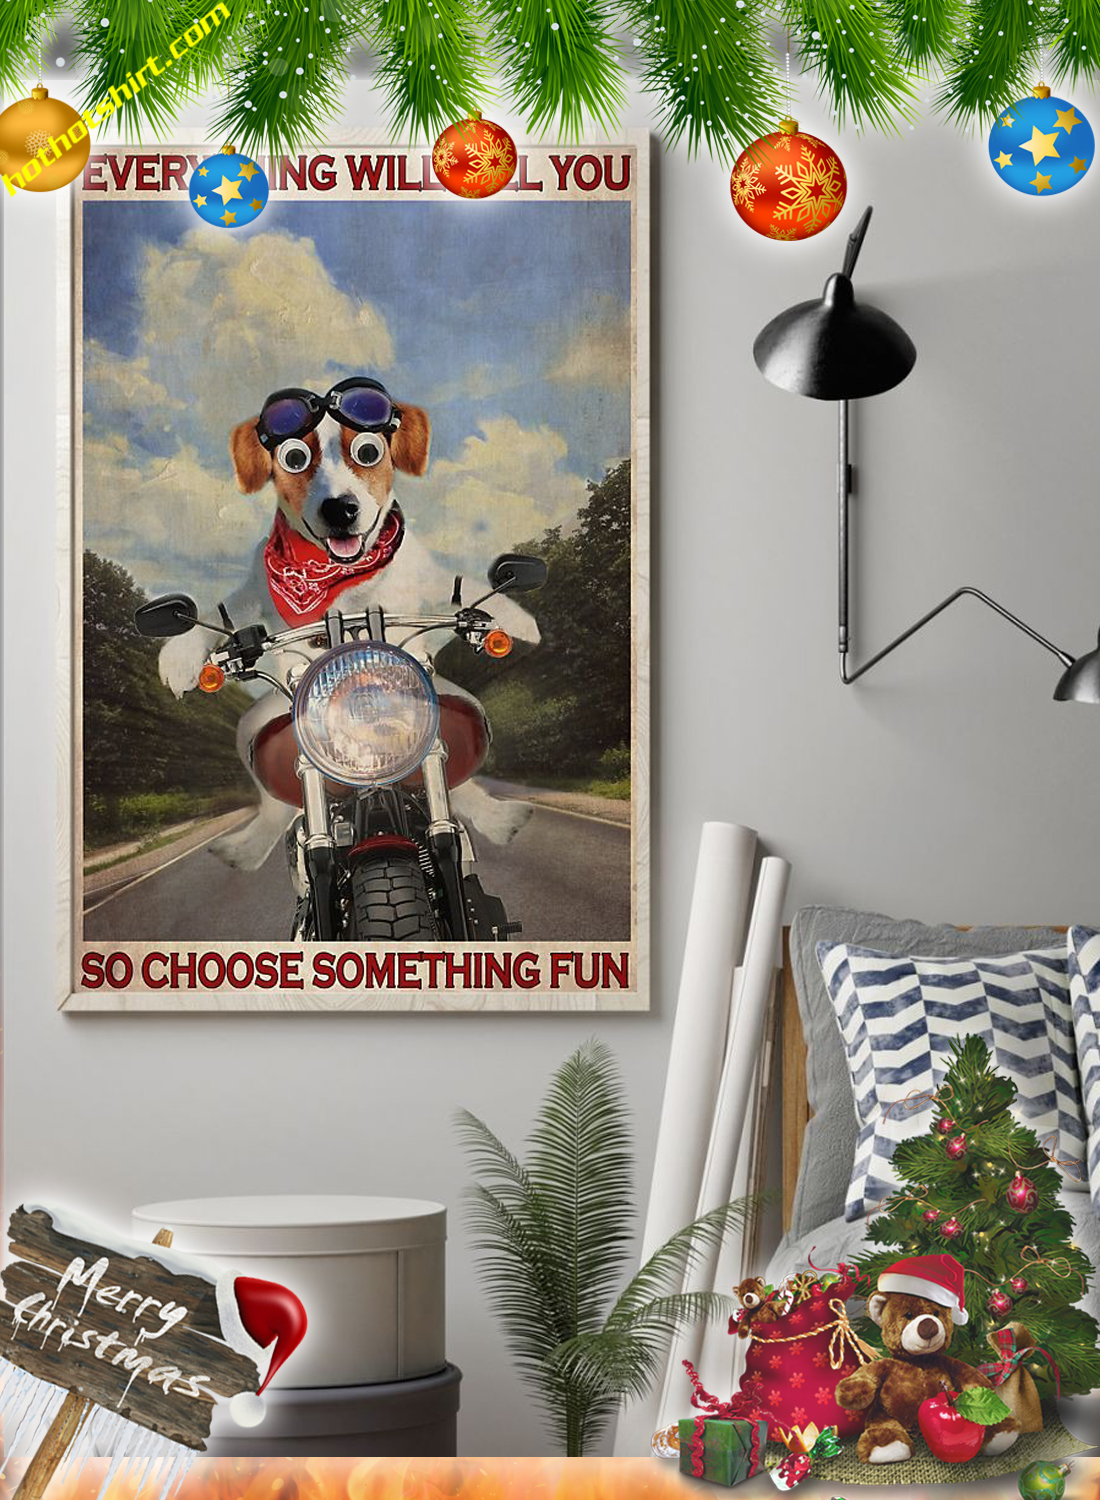 Jack Russel Motorcycle Everything will kill you so choose something fun poster 1